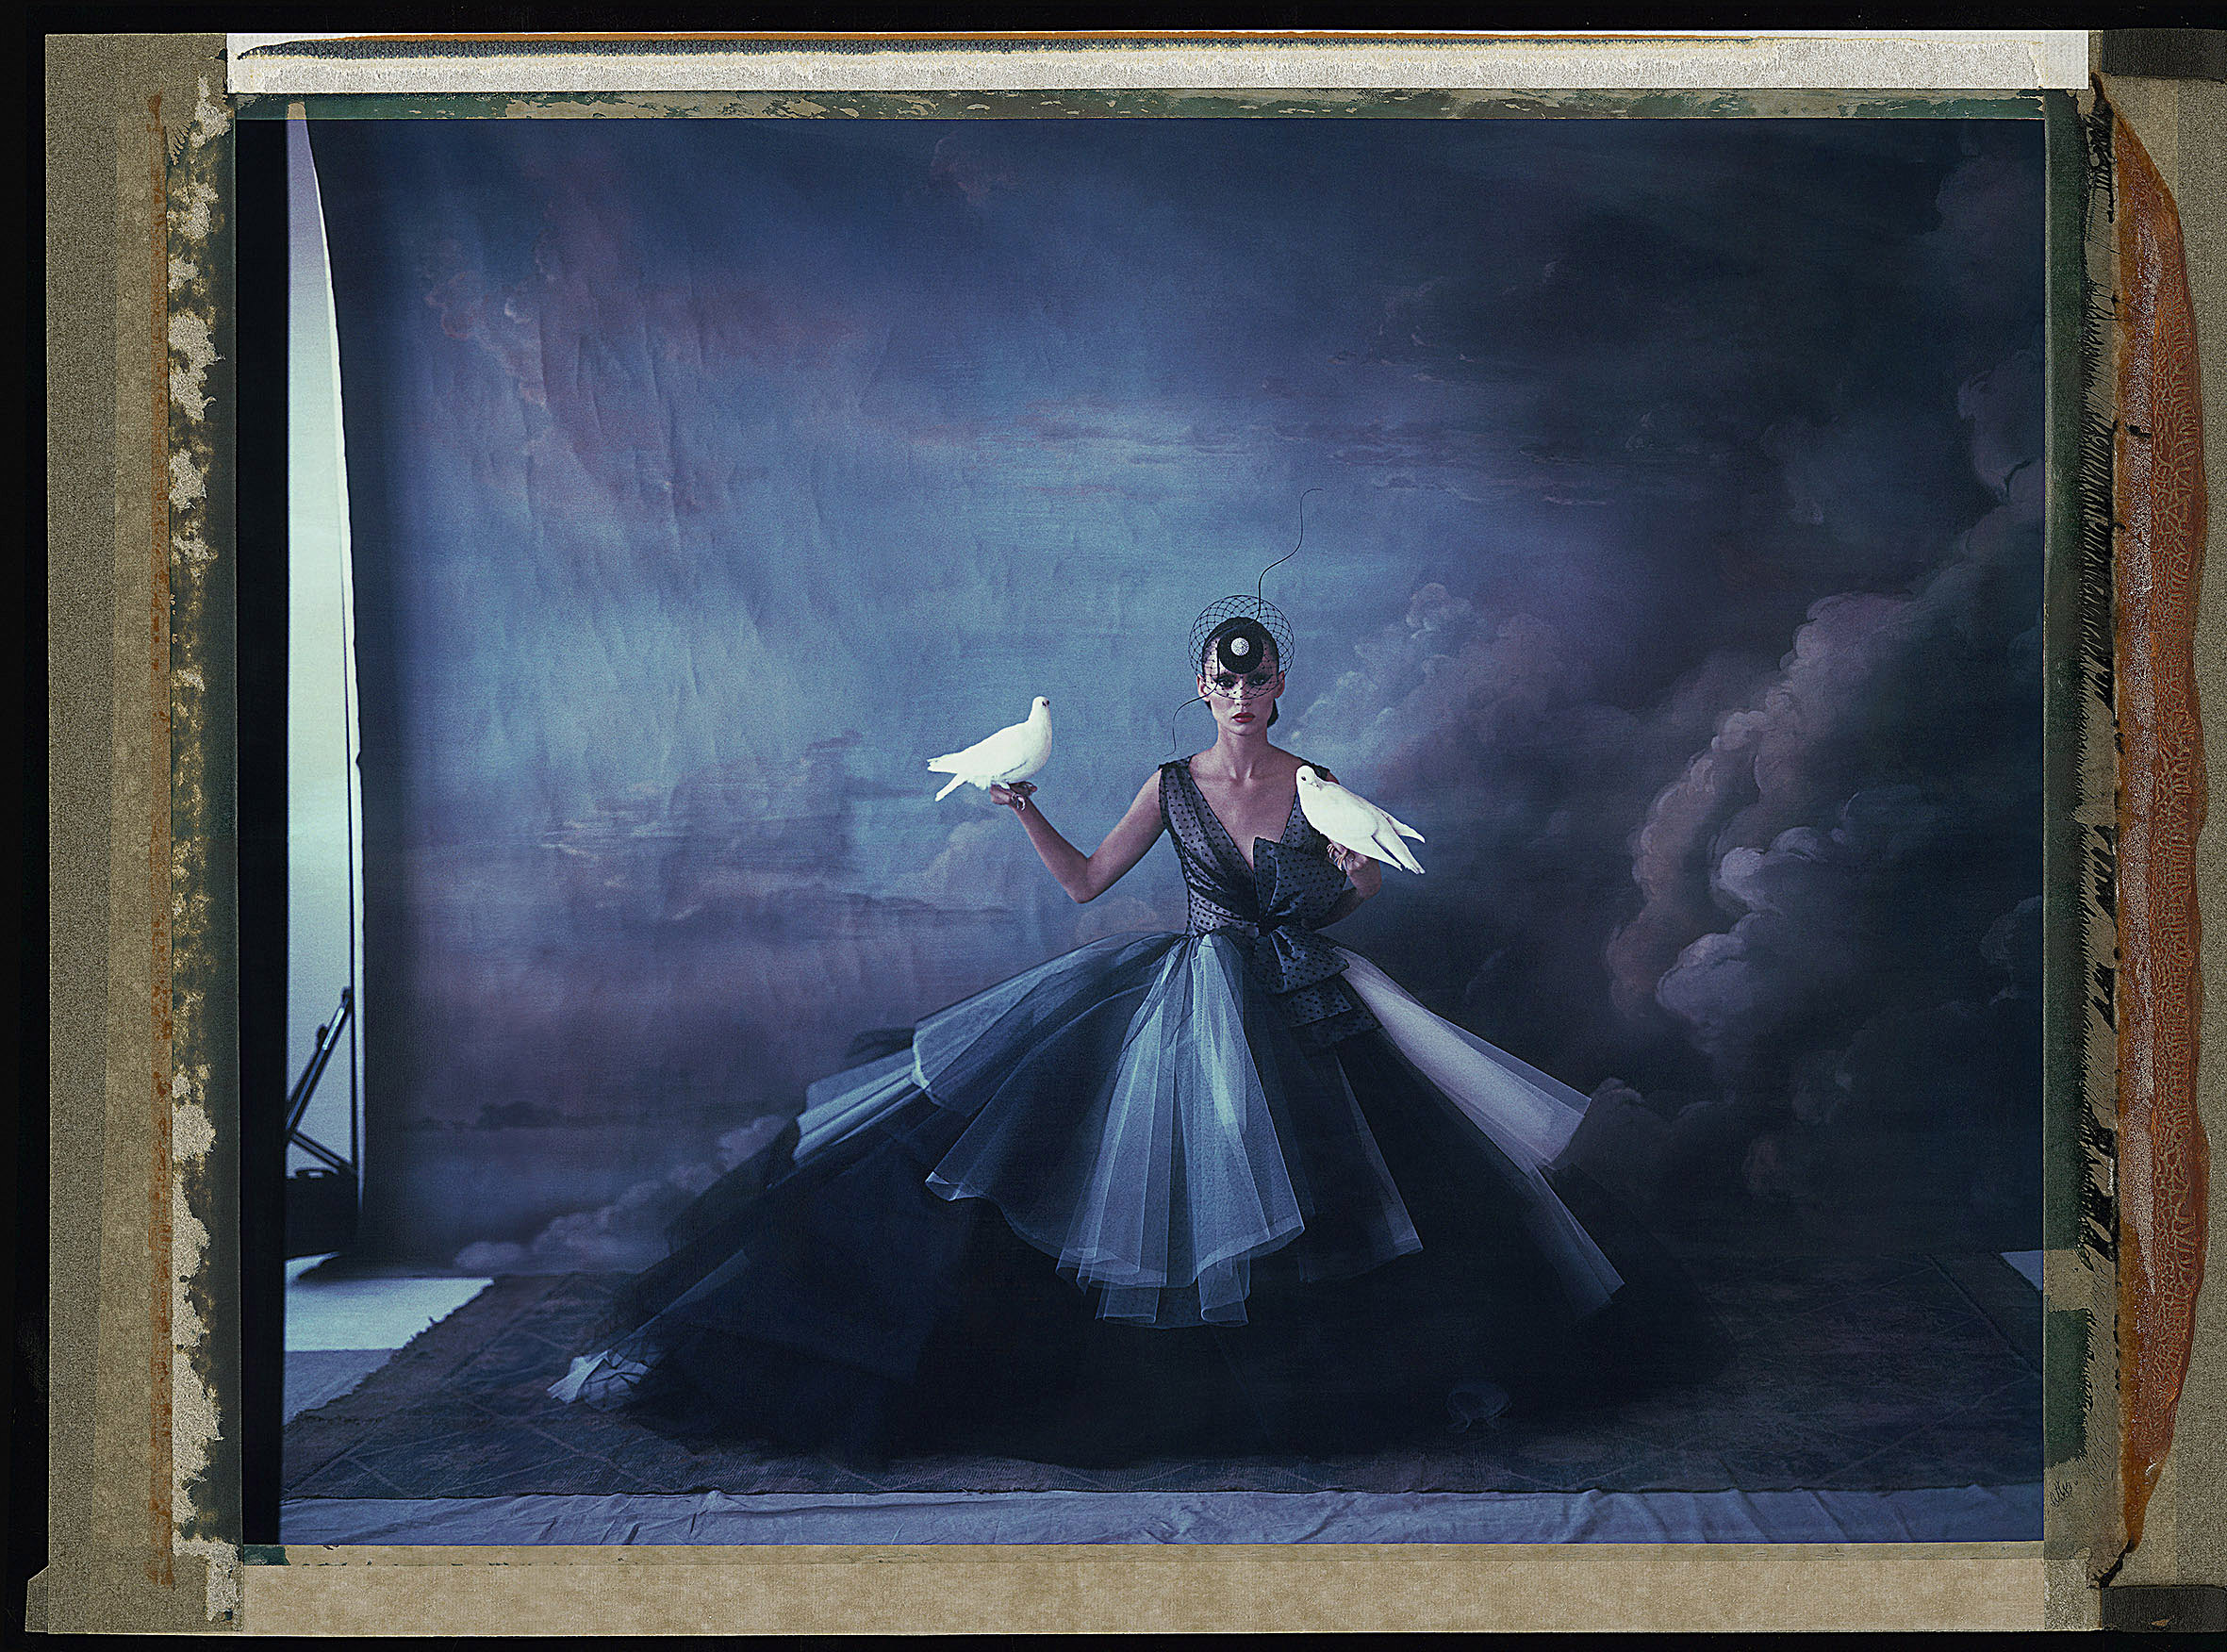 L'ARCHE DE NOÉ VIII, DIOR - PHILIP TREACY, HAUTE   COUTURE SUMMER 2012, 2012.   Chromogenic print from original polaroid, 20 x 24 inches (50 x 60 cm).   ©   Cathleen Naundorf / Courtesy Edwynn Houk Gallery, New York & Zürich